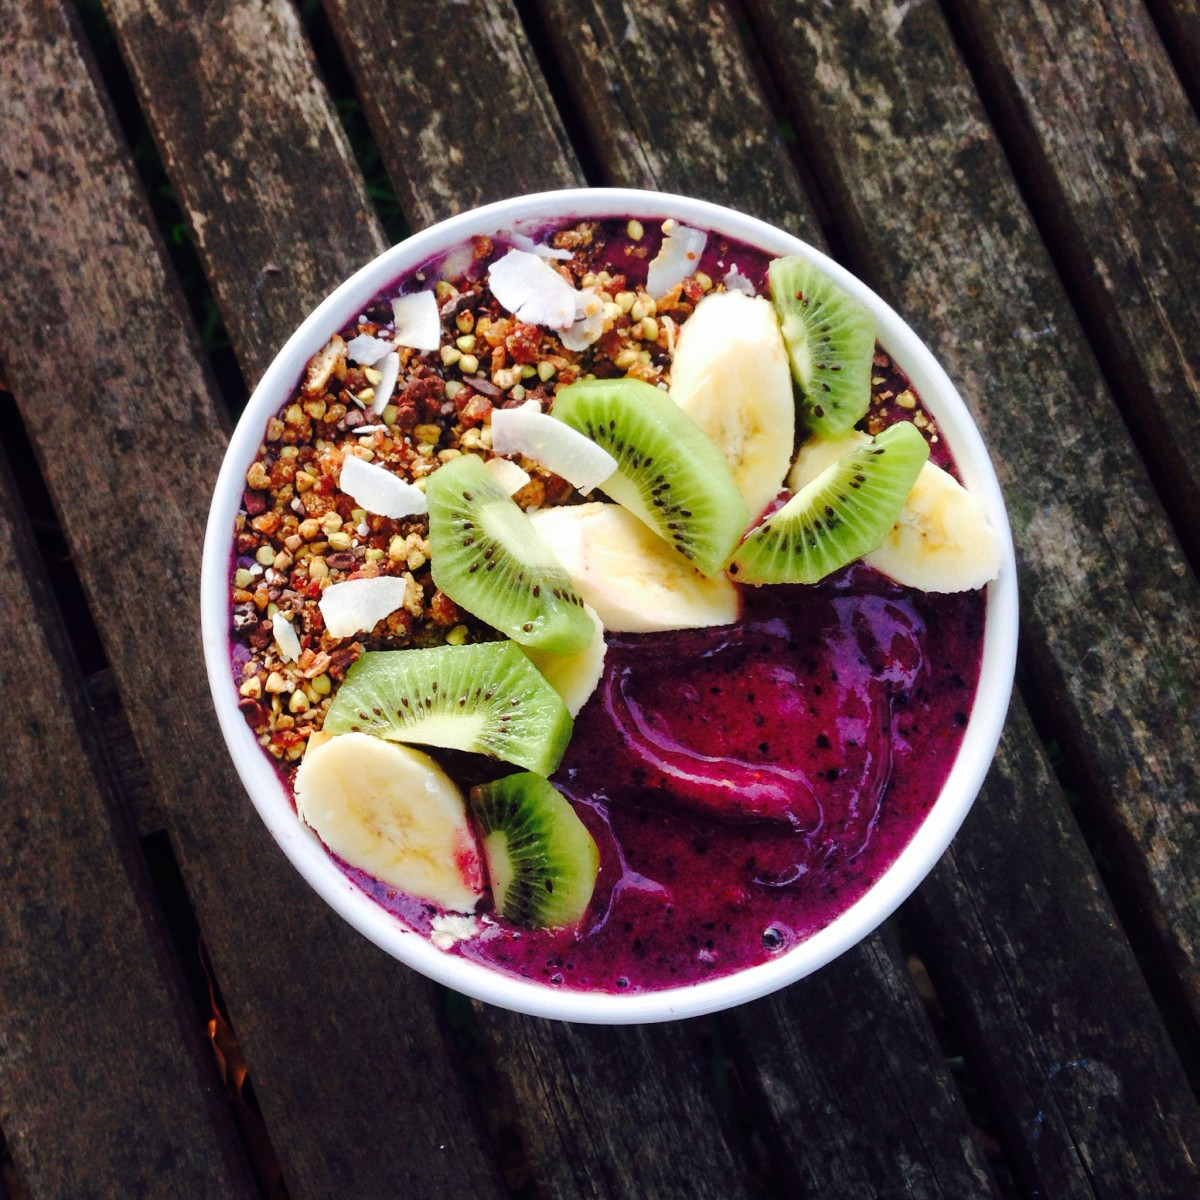 Acai smoothie bowl topped with fruit and granola.